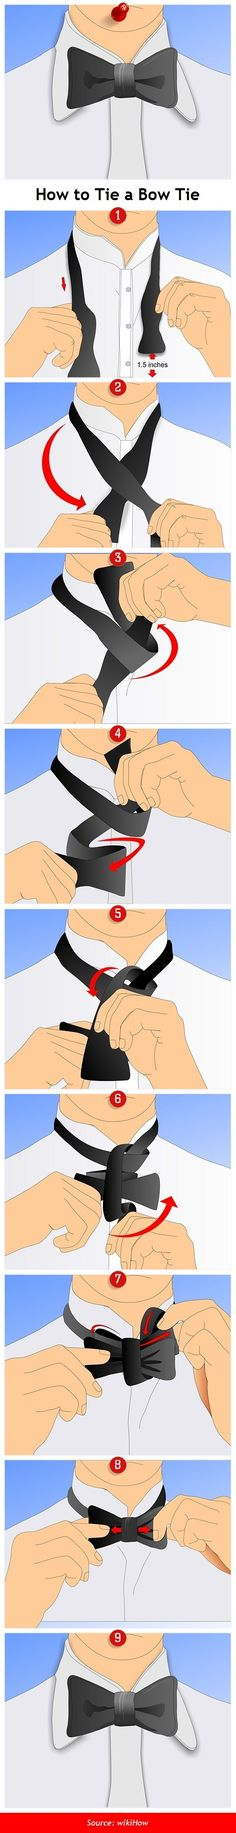 How to Tie a Bow Tie Infographic, you are not a Whovian unless you know that! Then check out all our bowties here, buy in bulk and save!